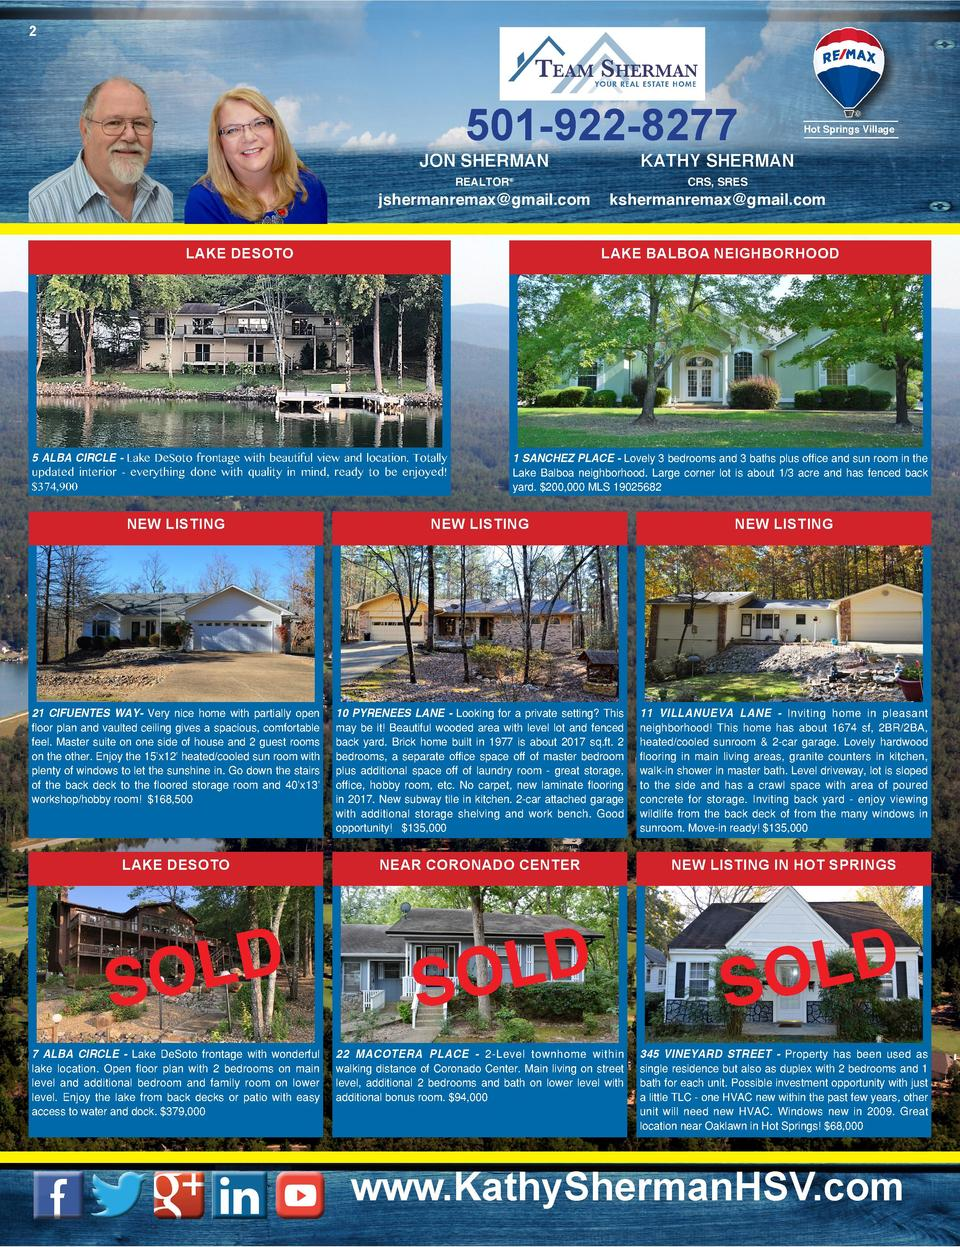 2  501-922-8277  JON SHERMAN  Hot Springs Village  KATHY SHERMAN  REALTOR    CRS, SRES  jshermanremax gmail.com  kshermanr...